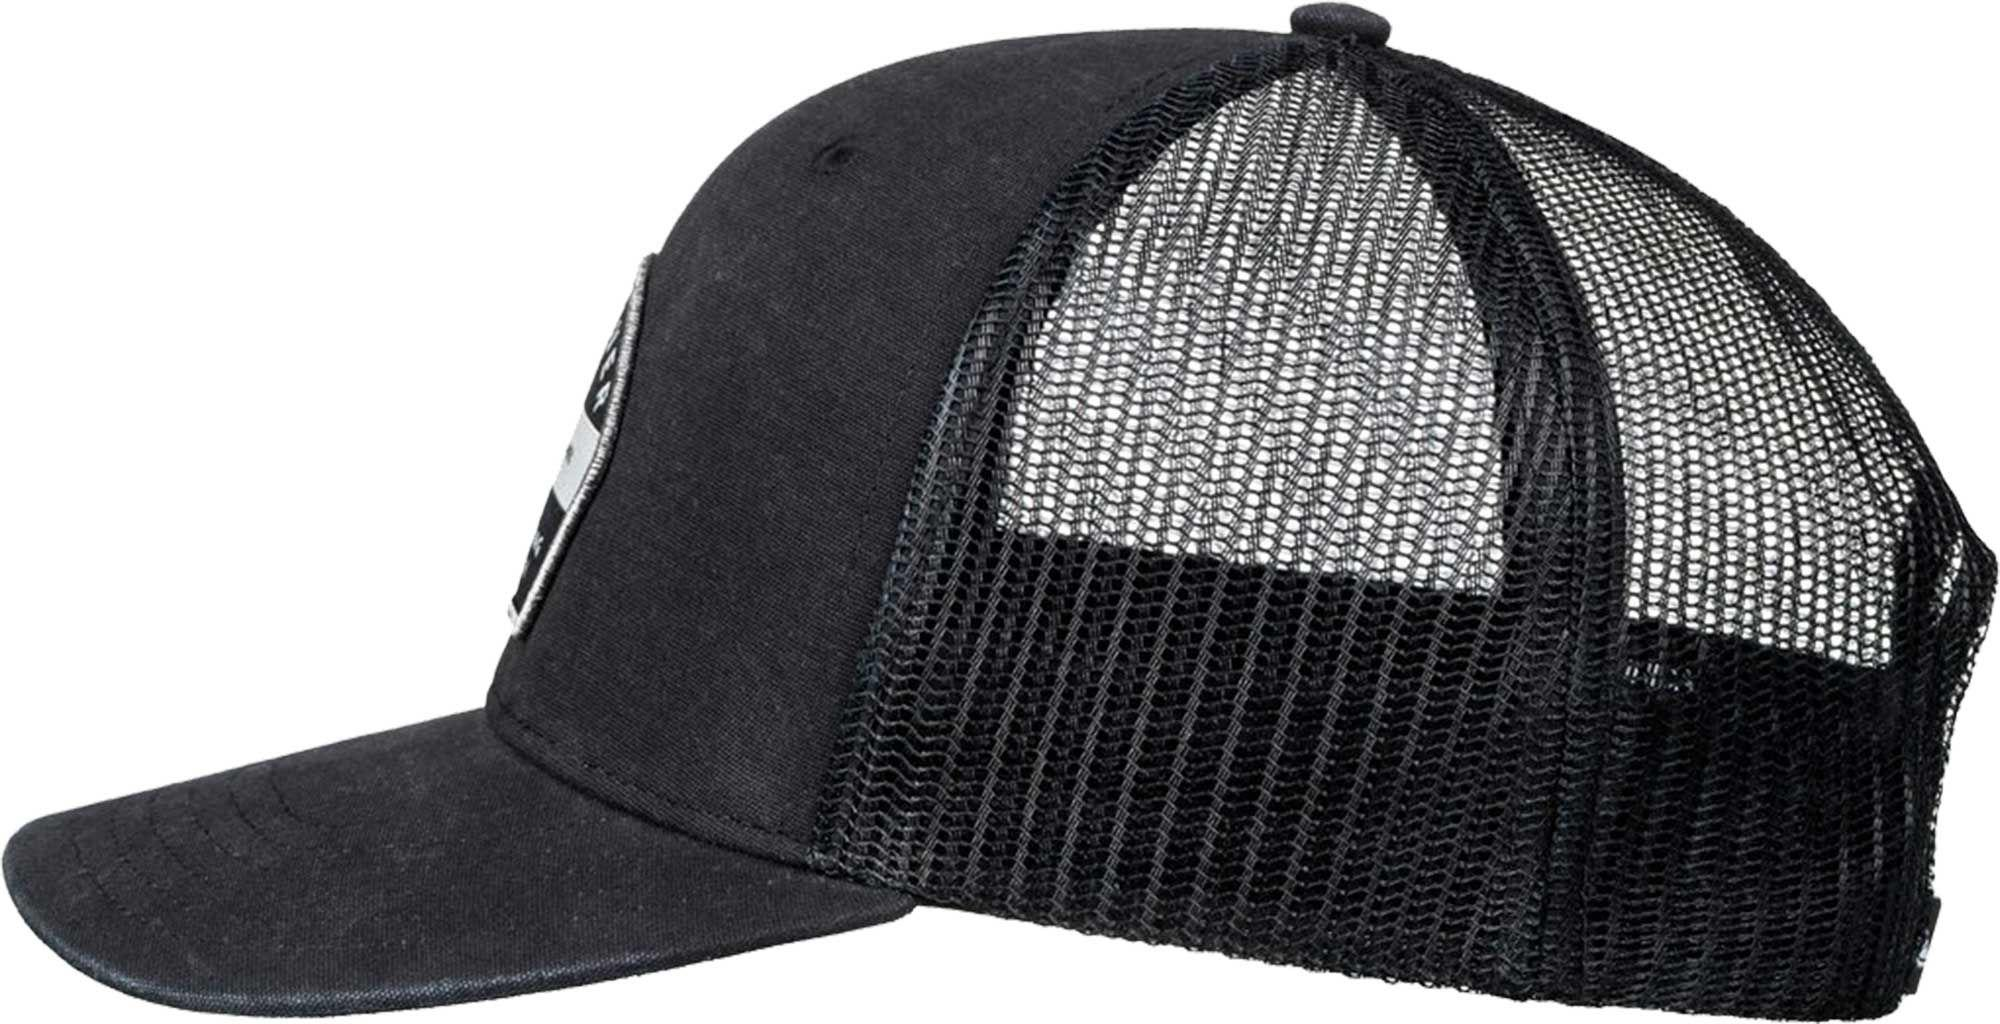 e9abe4378c7 ... italy lyst quiksilver quicksilver silver lining trucker hat in black  for men 7c651 06691